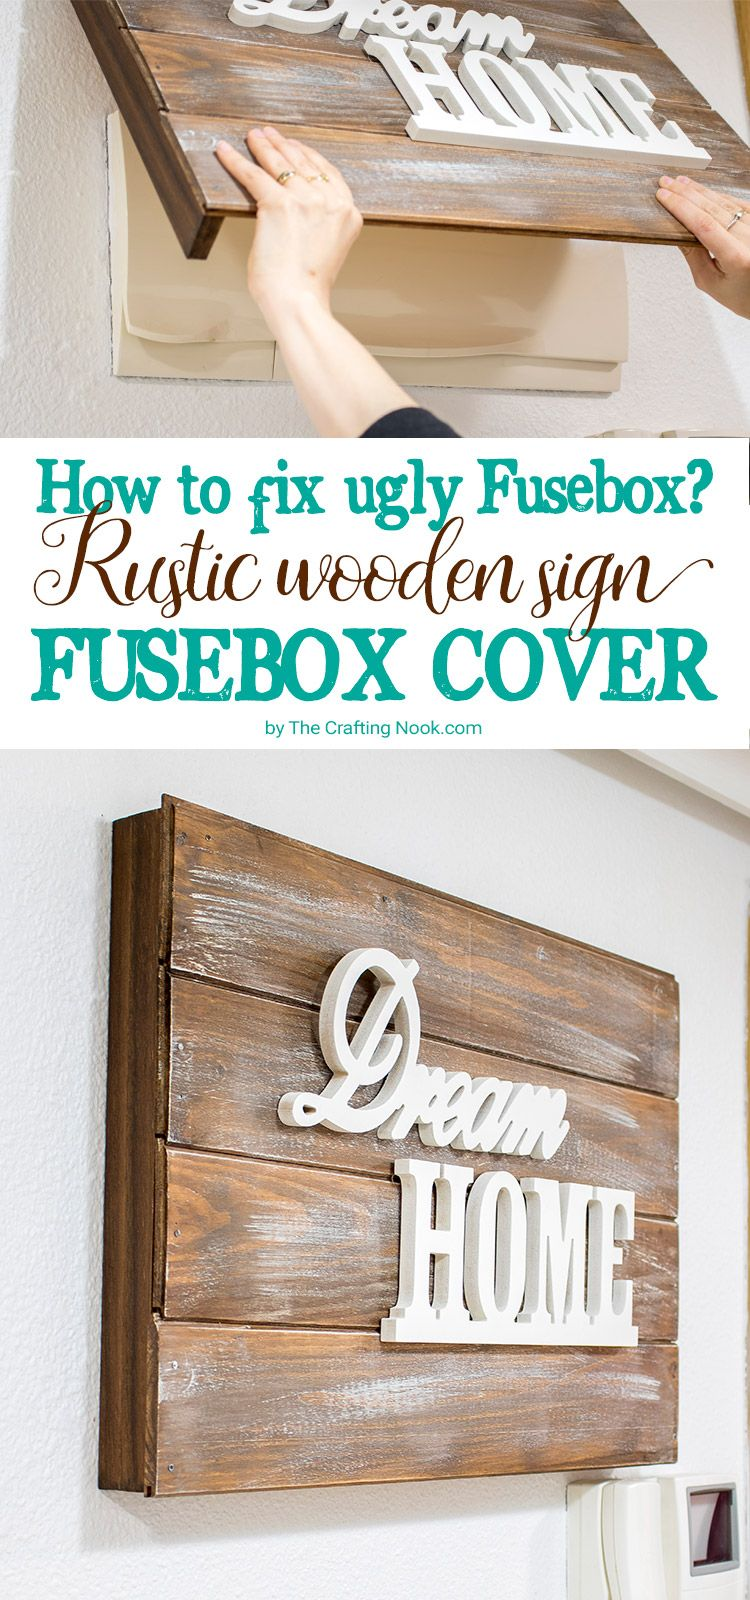 rustic wooden sign fusebox cover how to the crafting nook by titicrafty [ 750 x 1600 Pixel ]